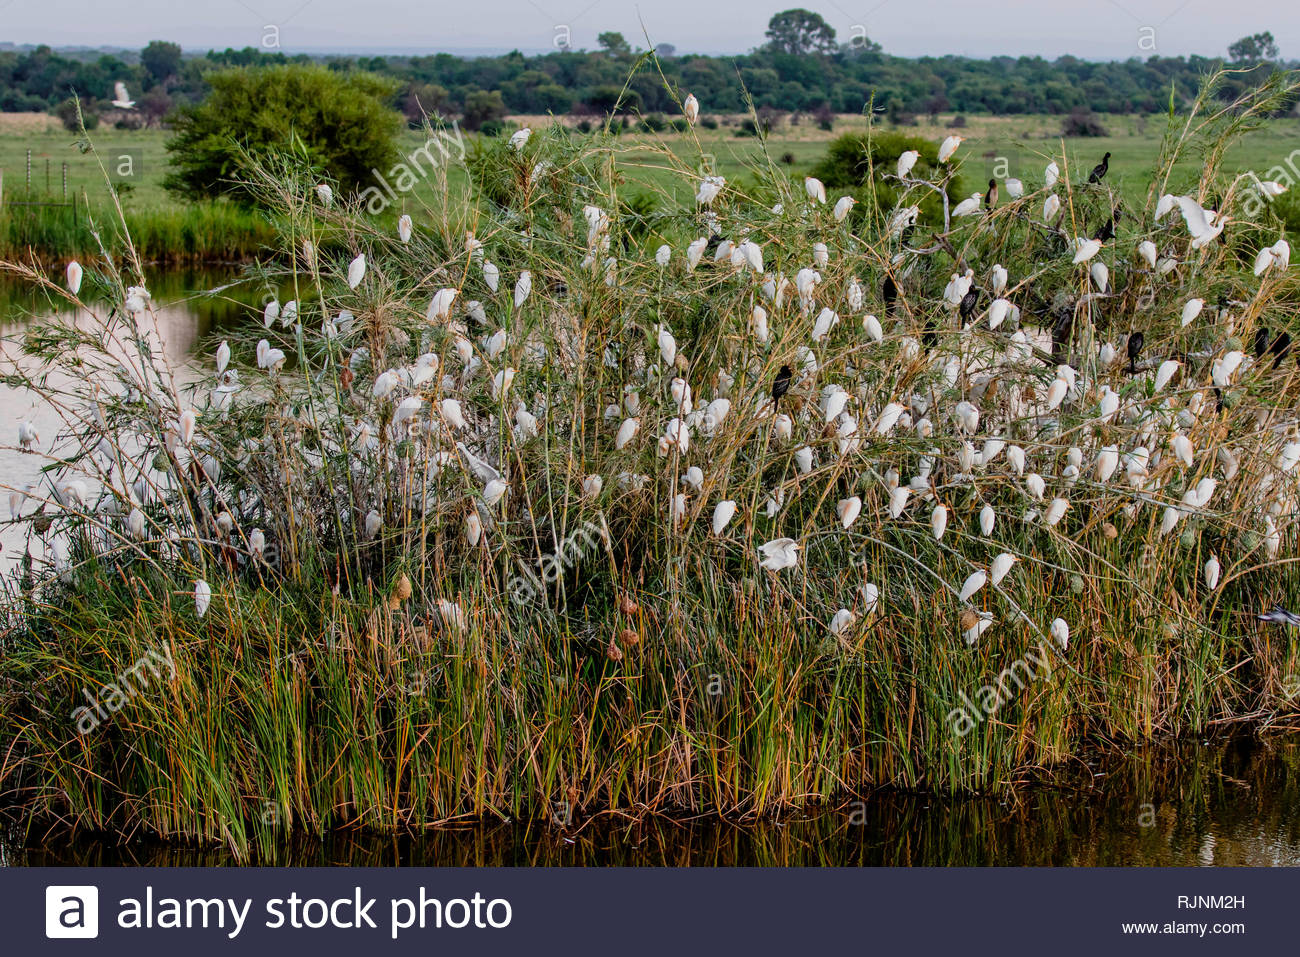 Bush filled with white cattle egrets waking up in City of Tshwane, Gauteng, South Africa - Stock Image